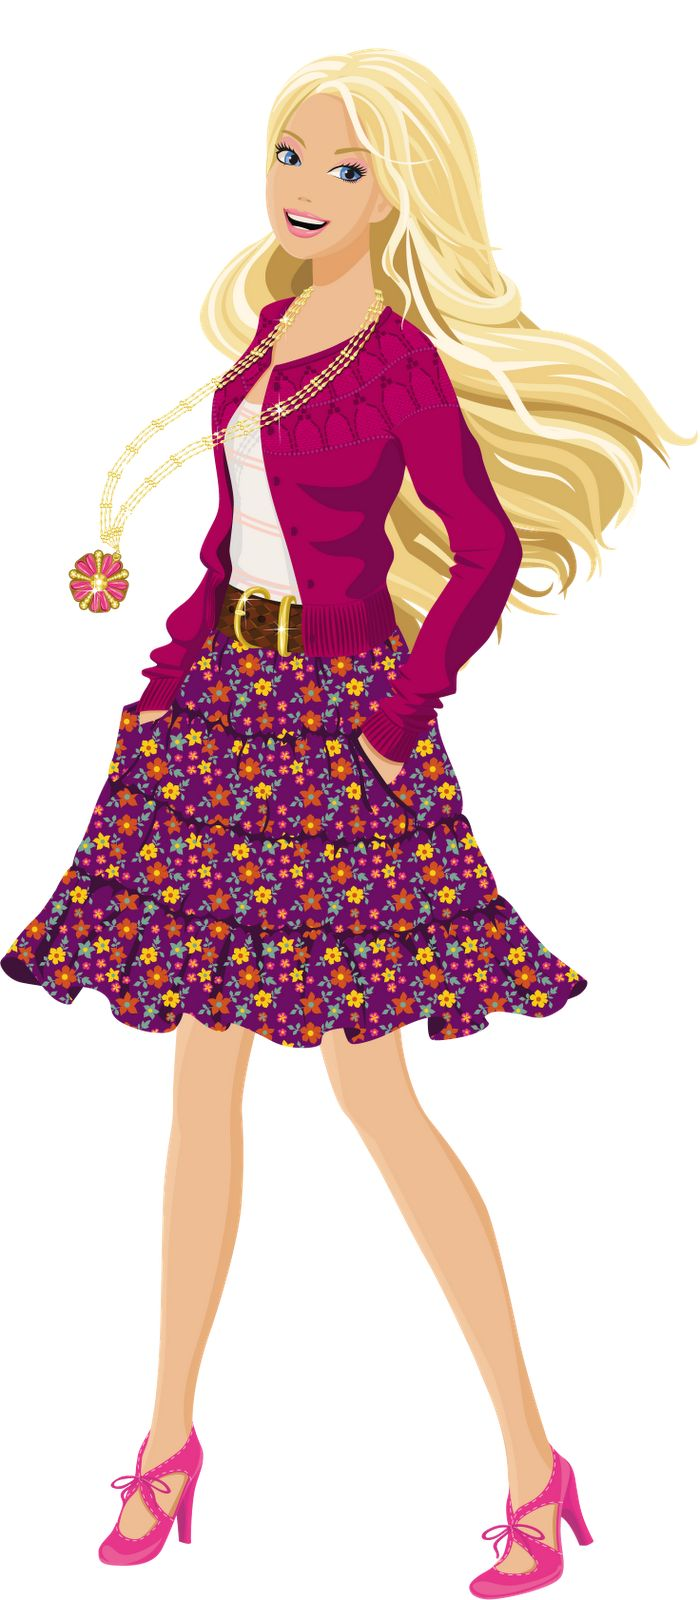 Barbie clipart princess On Barbie 66 images pics